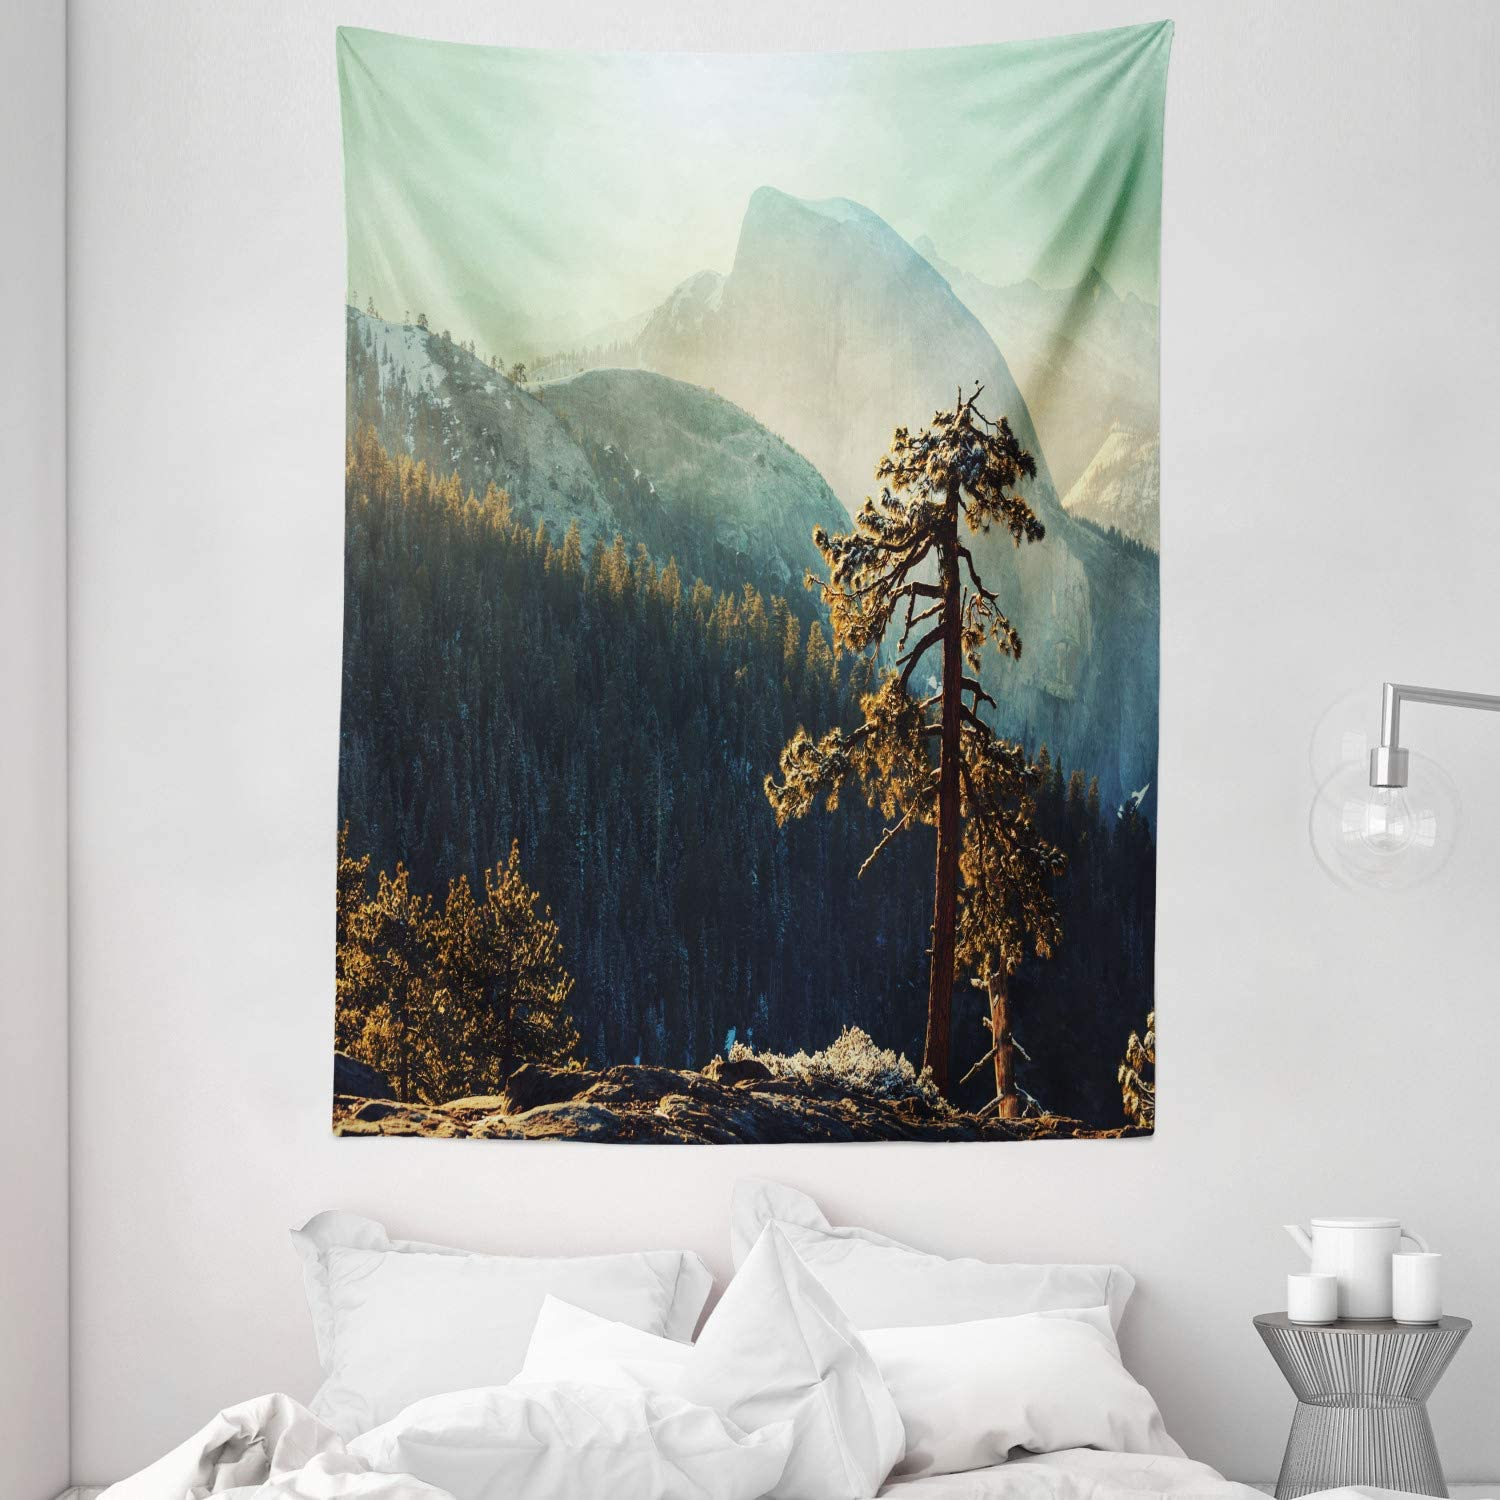 """Ambesonne Yosemite Tapestry, Yosemite National Park from The Top of Mountain Misty Morning Landscapes Photo, Wall Hanging for Bedroom Living Room Dorm, 60"""" X 80"""", Teal Brown"""